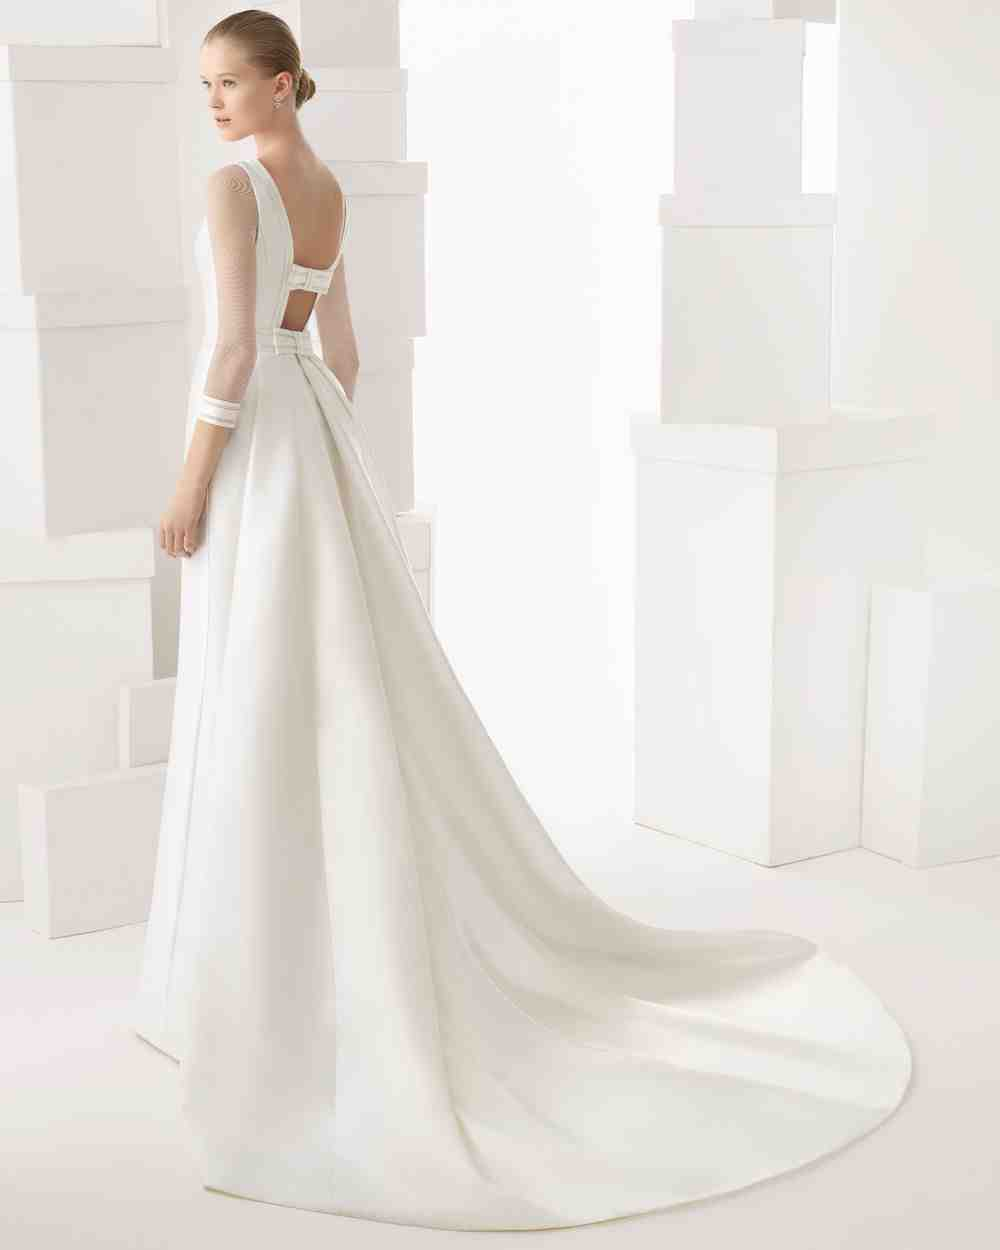 Long sleeve satin wedding dresses wedding and bridal for Silk wedding dresses with sleeves